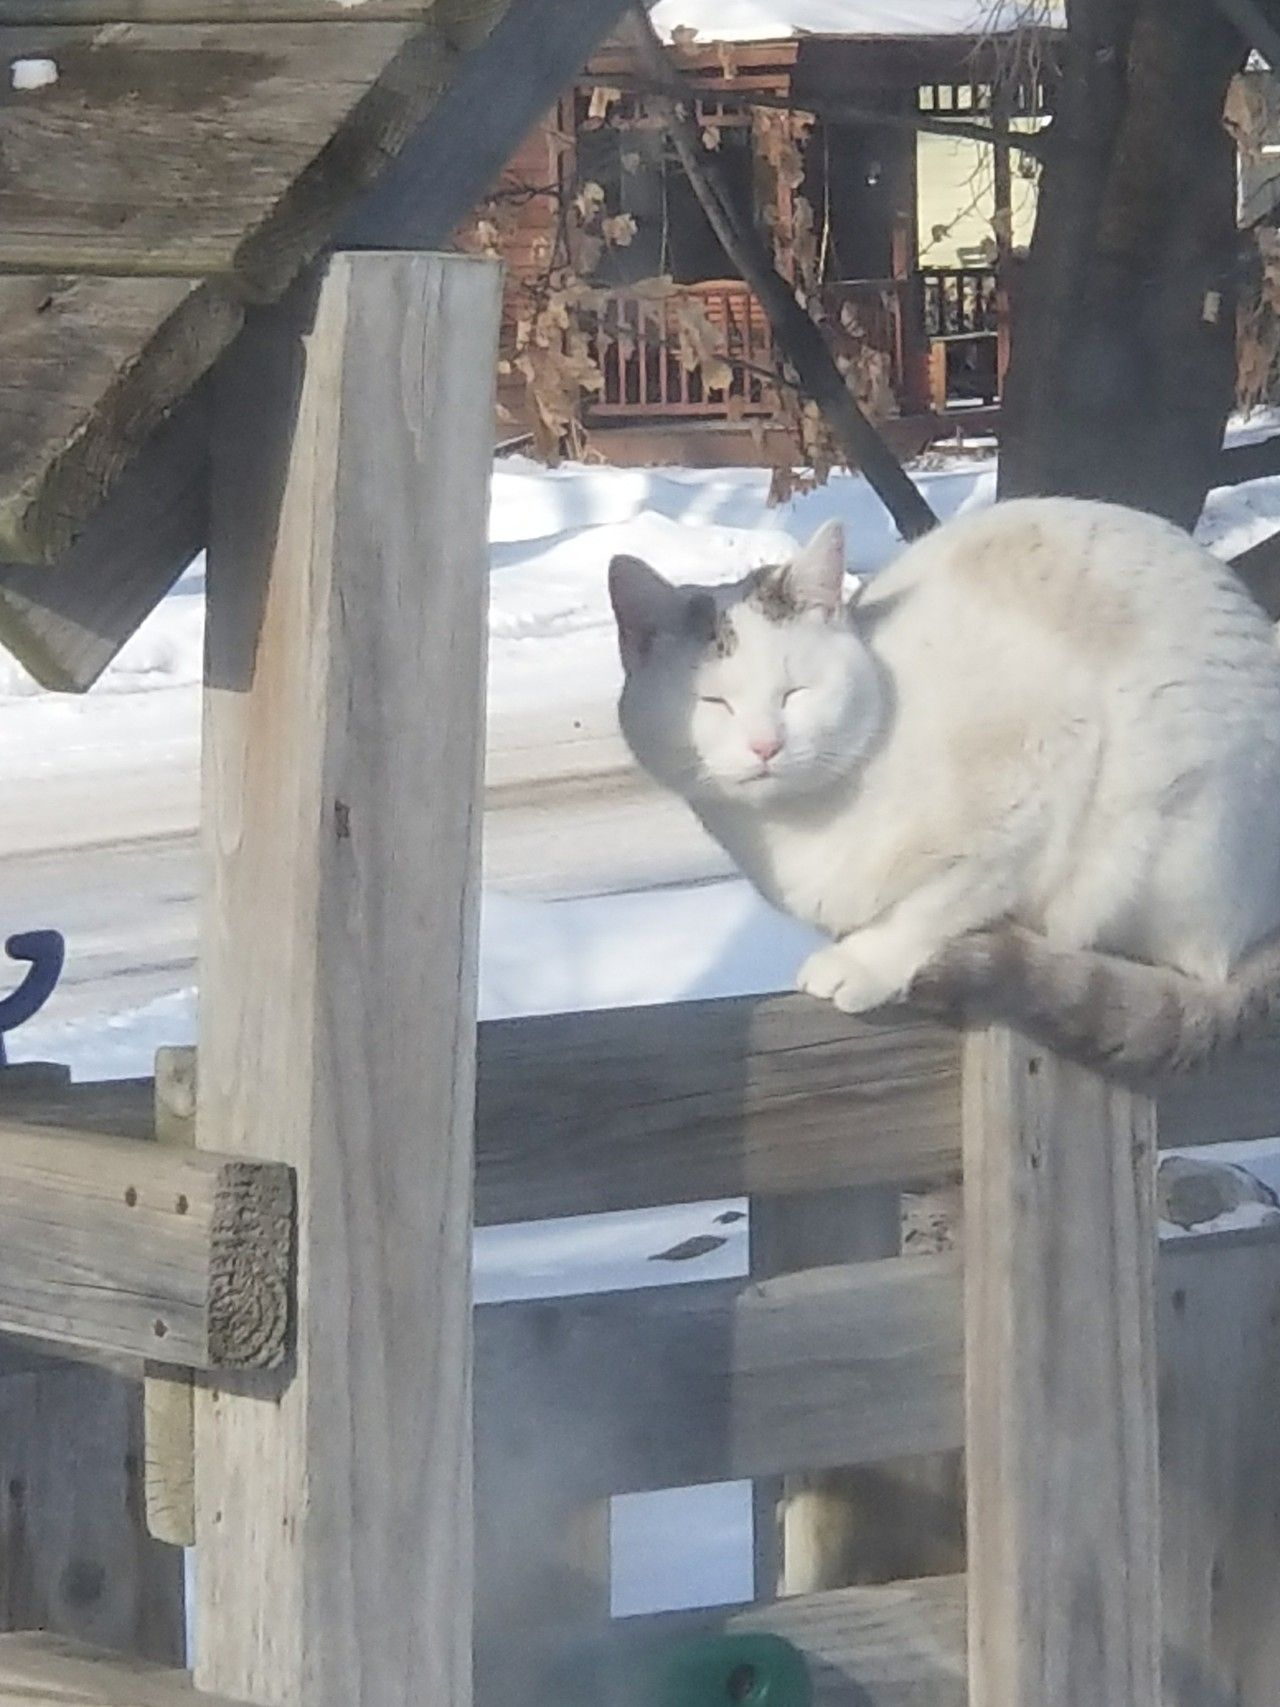 Cat Outside My House Today He Was Shivering So I Let Him In My Heated Garage For A Bit And Gave Him Food By Kingkiller Cats Outside Pretty Cats Cats